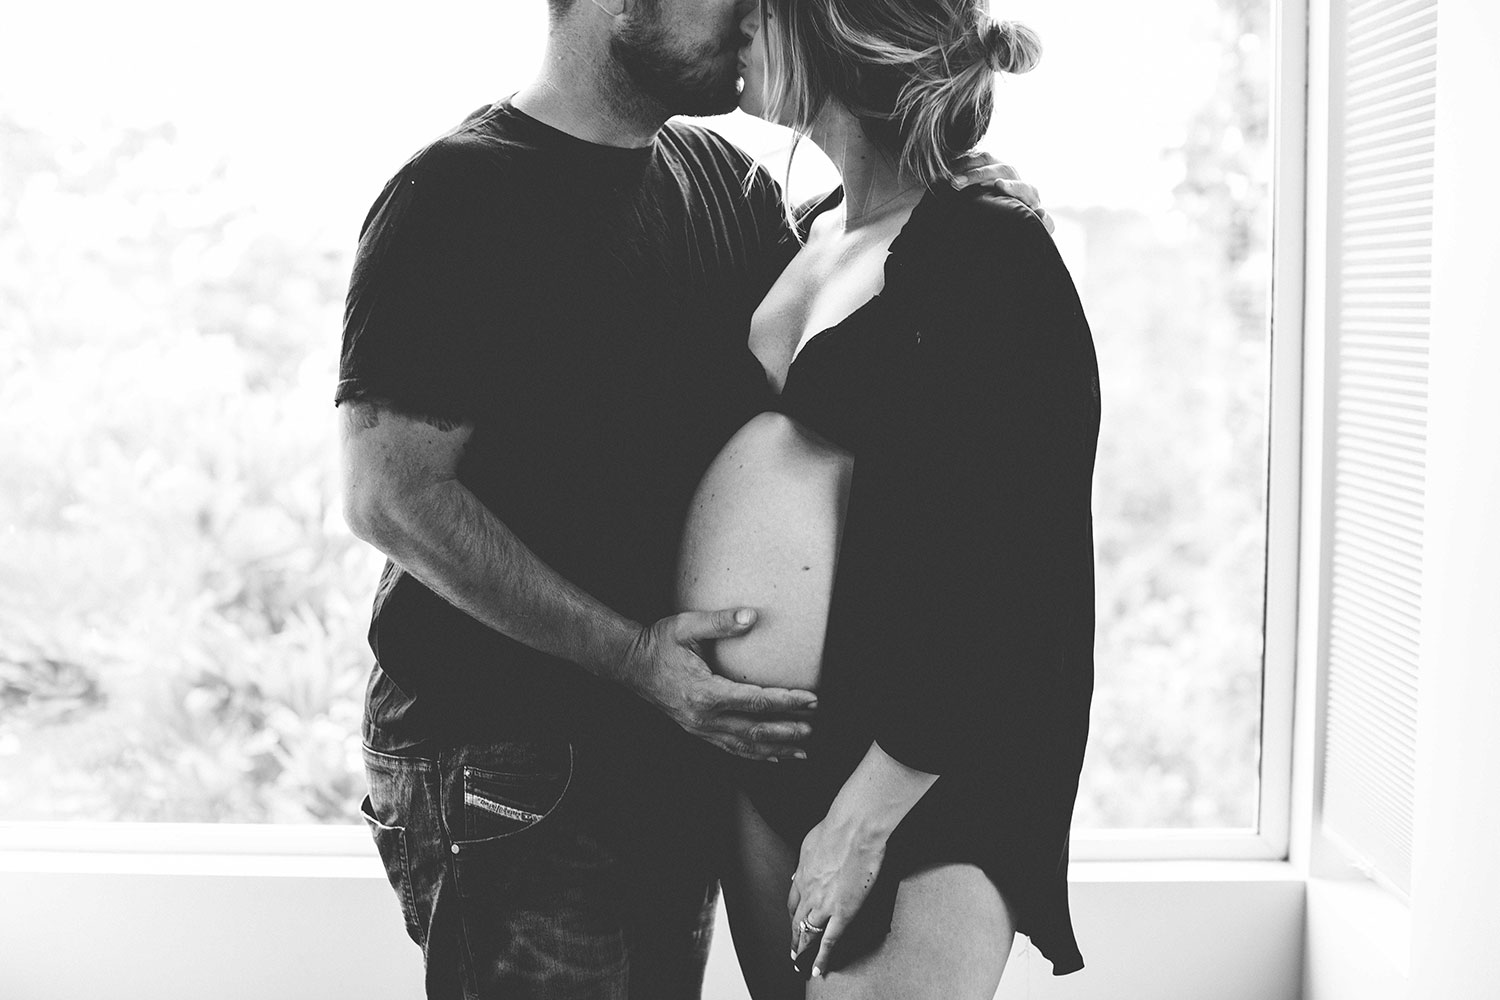 alex_and_kyle_black_and_white_maternity.jpg